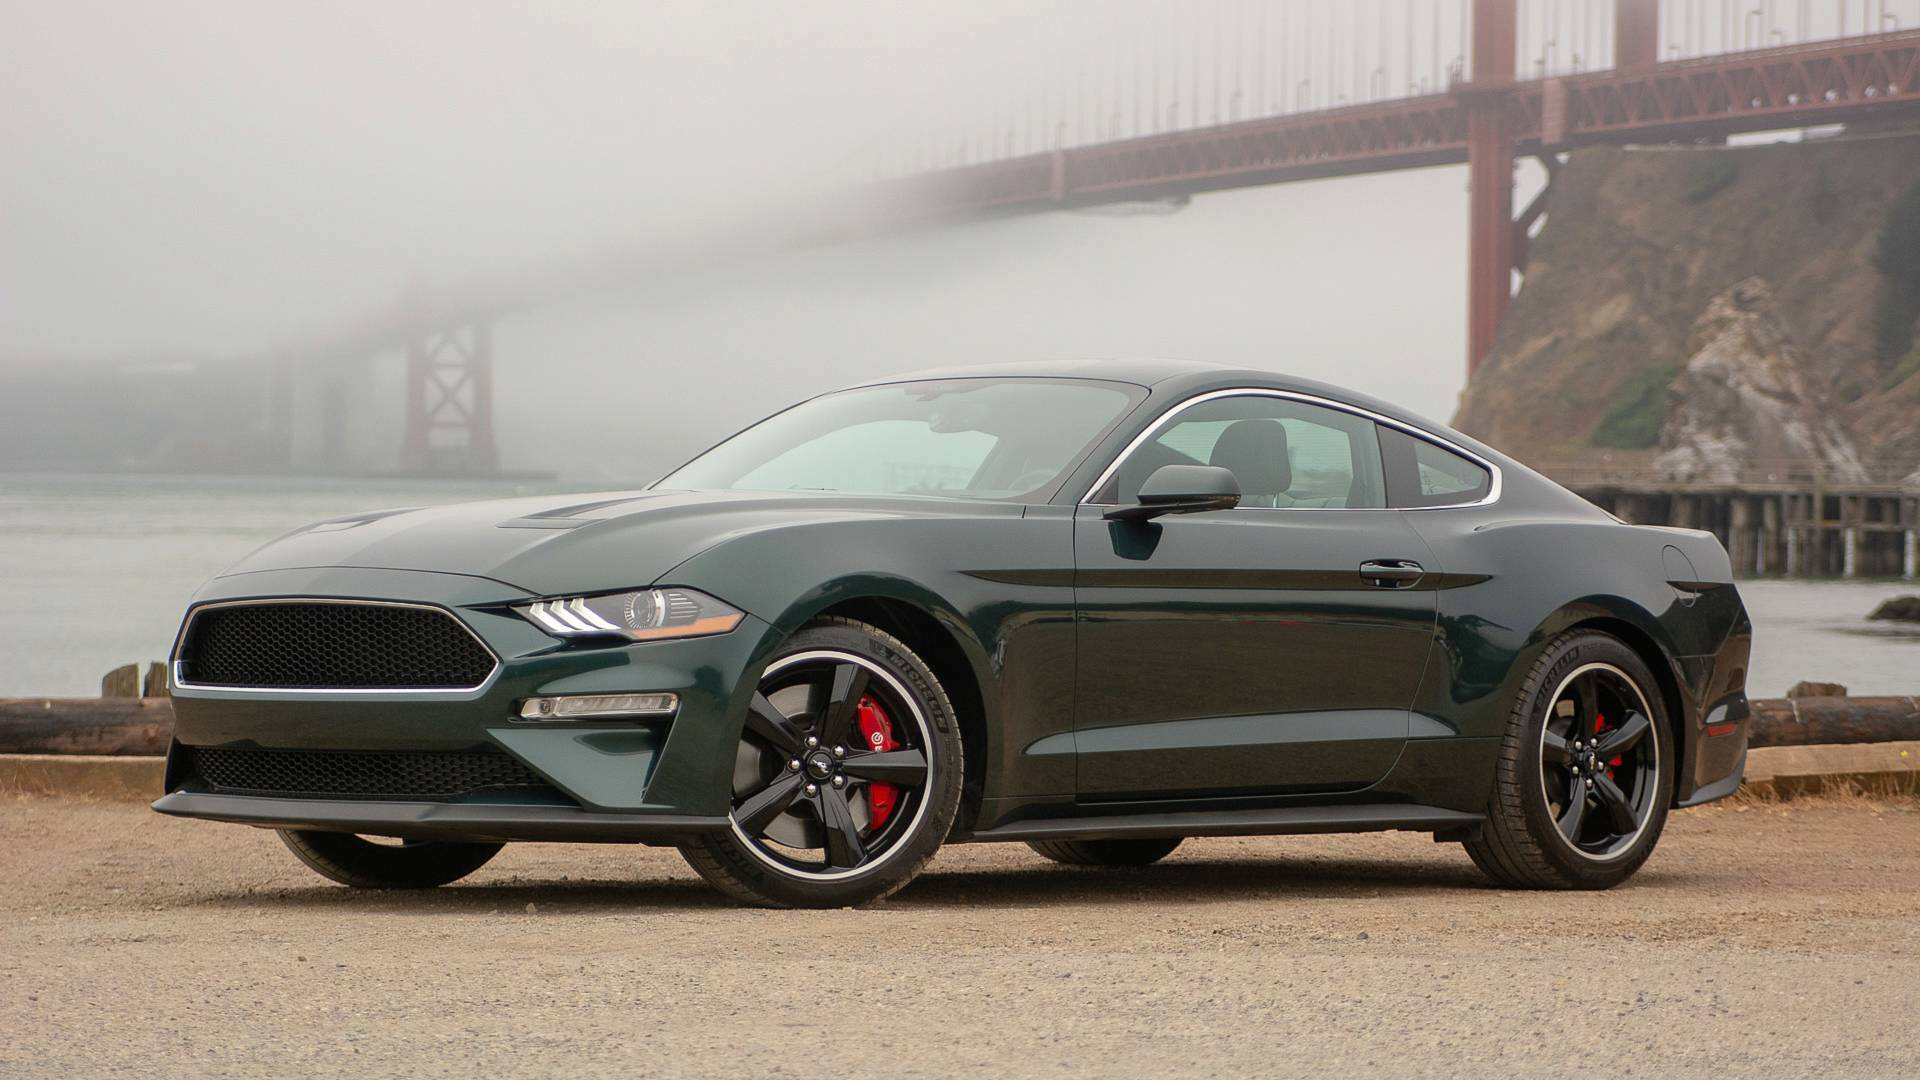 43 Best Review Best 2019 Ford Mustang Bullitt Picture Release Date And Review Speed Test by Best 2019 Ford Mustang Bullitt Picture Release Date And Review